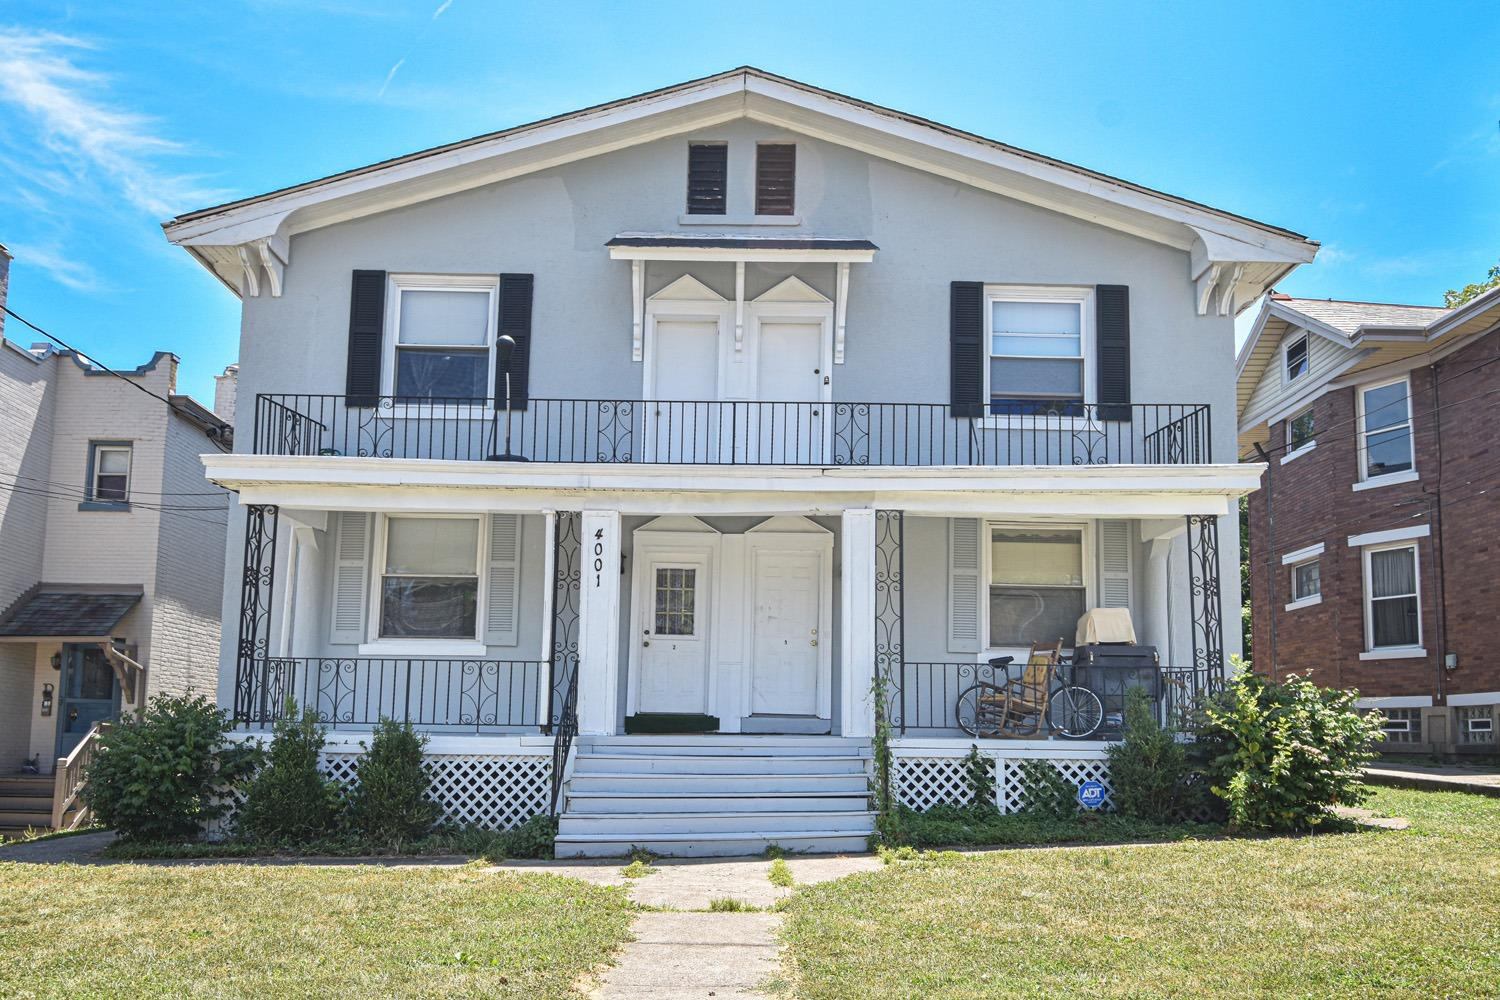 4001 4003 W Eighth St Price Hill, OH